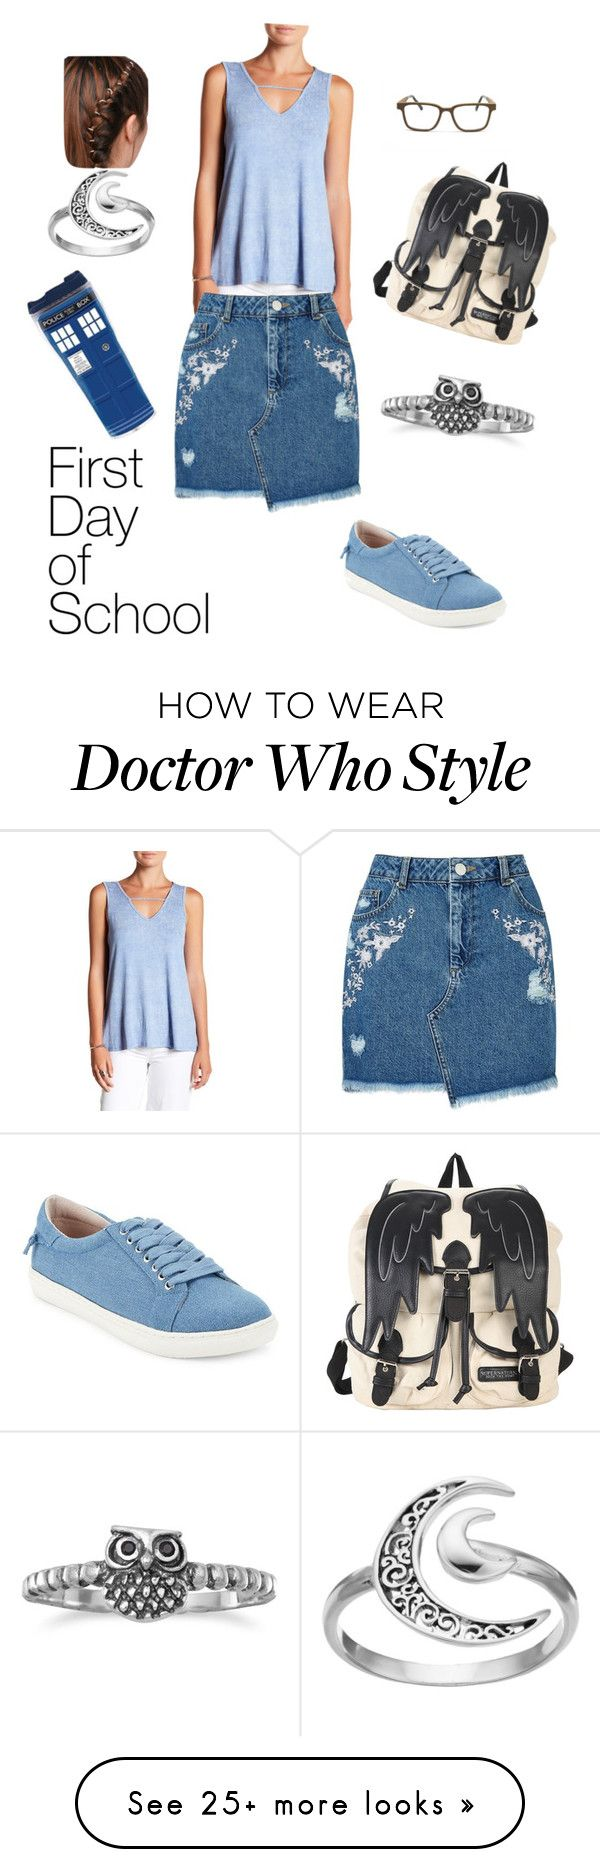 """1st day blues"" by tluebke on Polyvore featuring Hot Topic, Paper Crane, Miss Selfridge, J/Slides, Primrose and BillyTheTree"